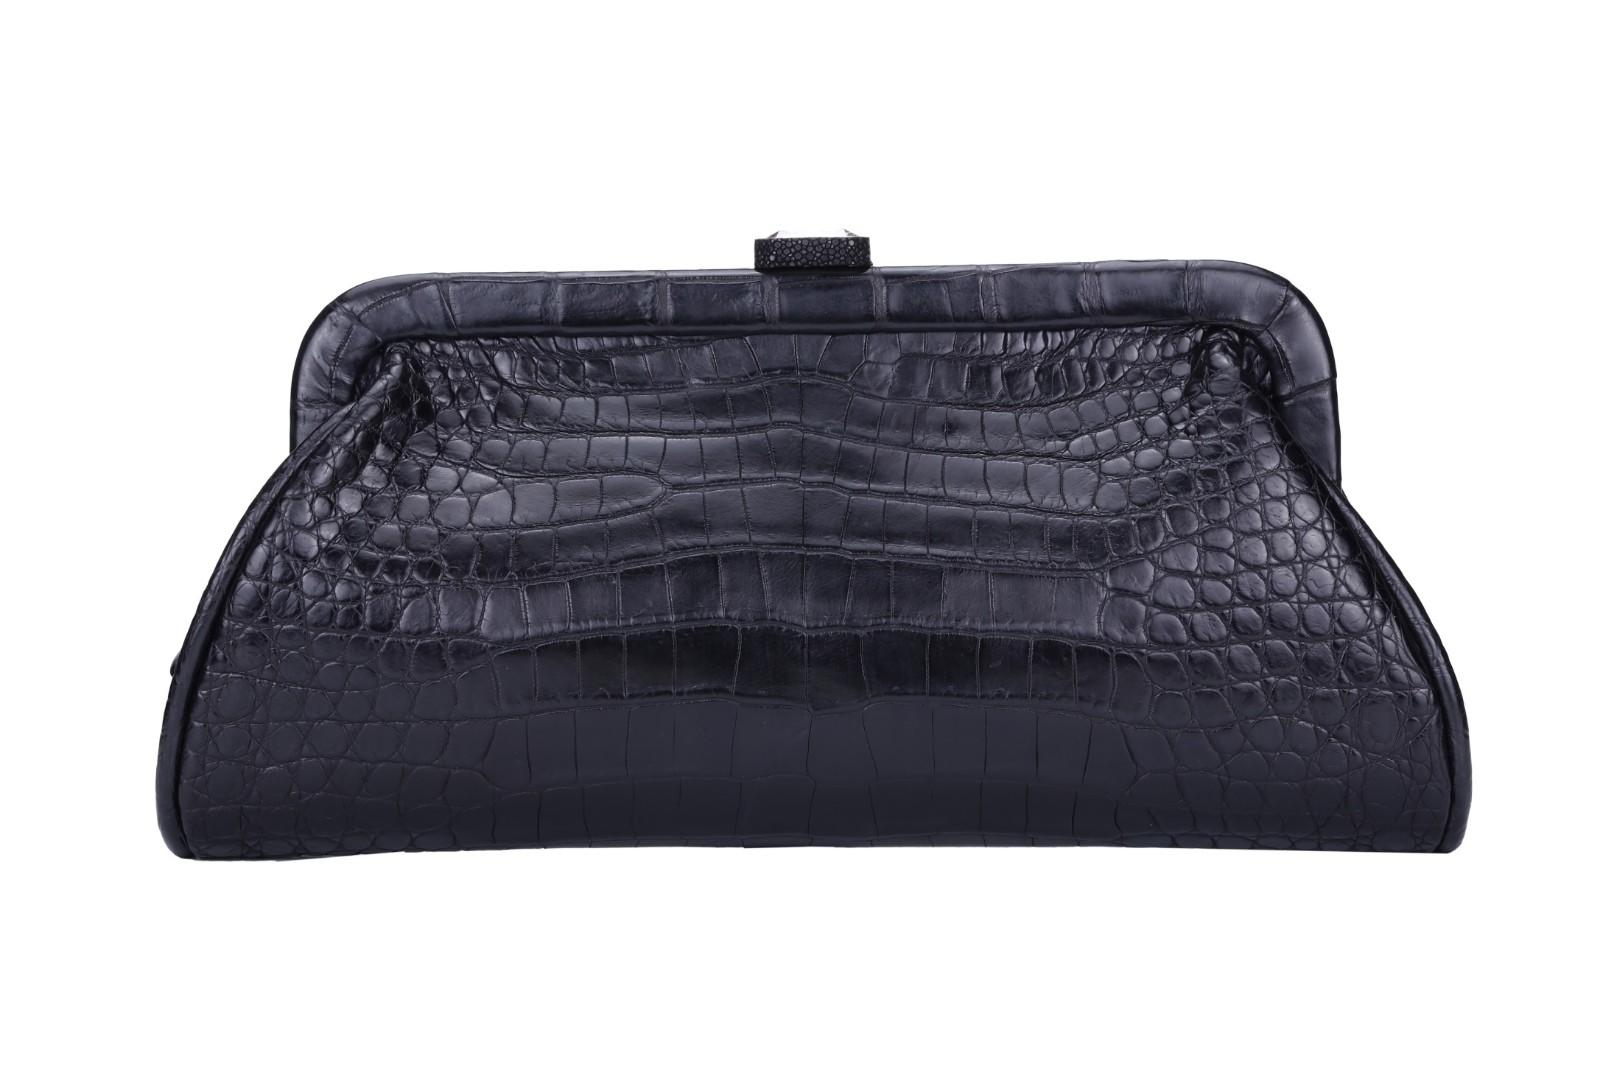 durable fancy clutch bags check now for women GF bags